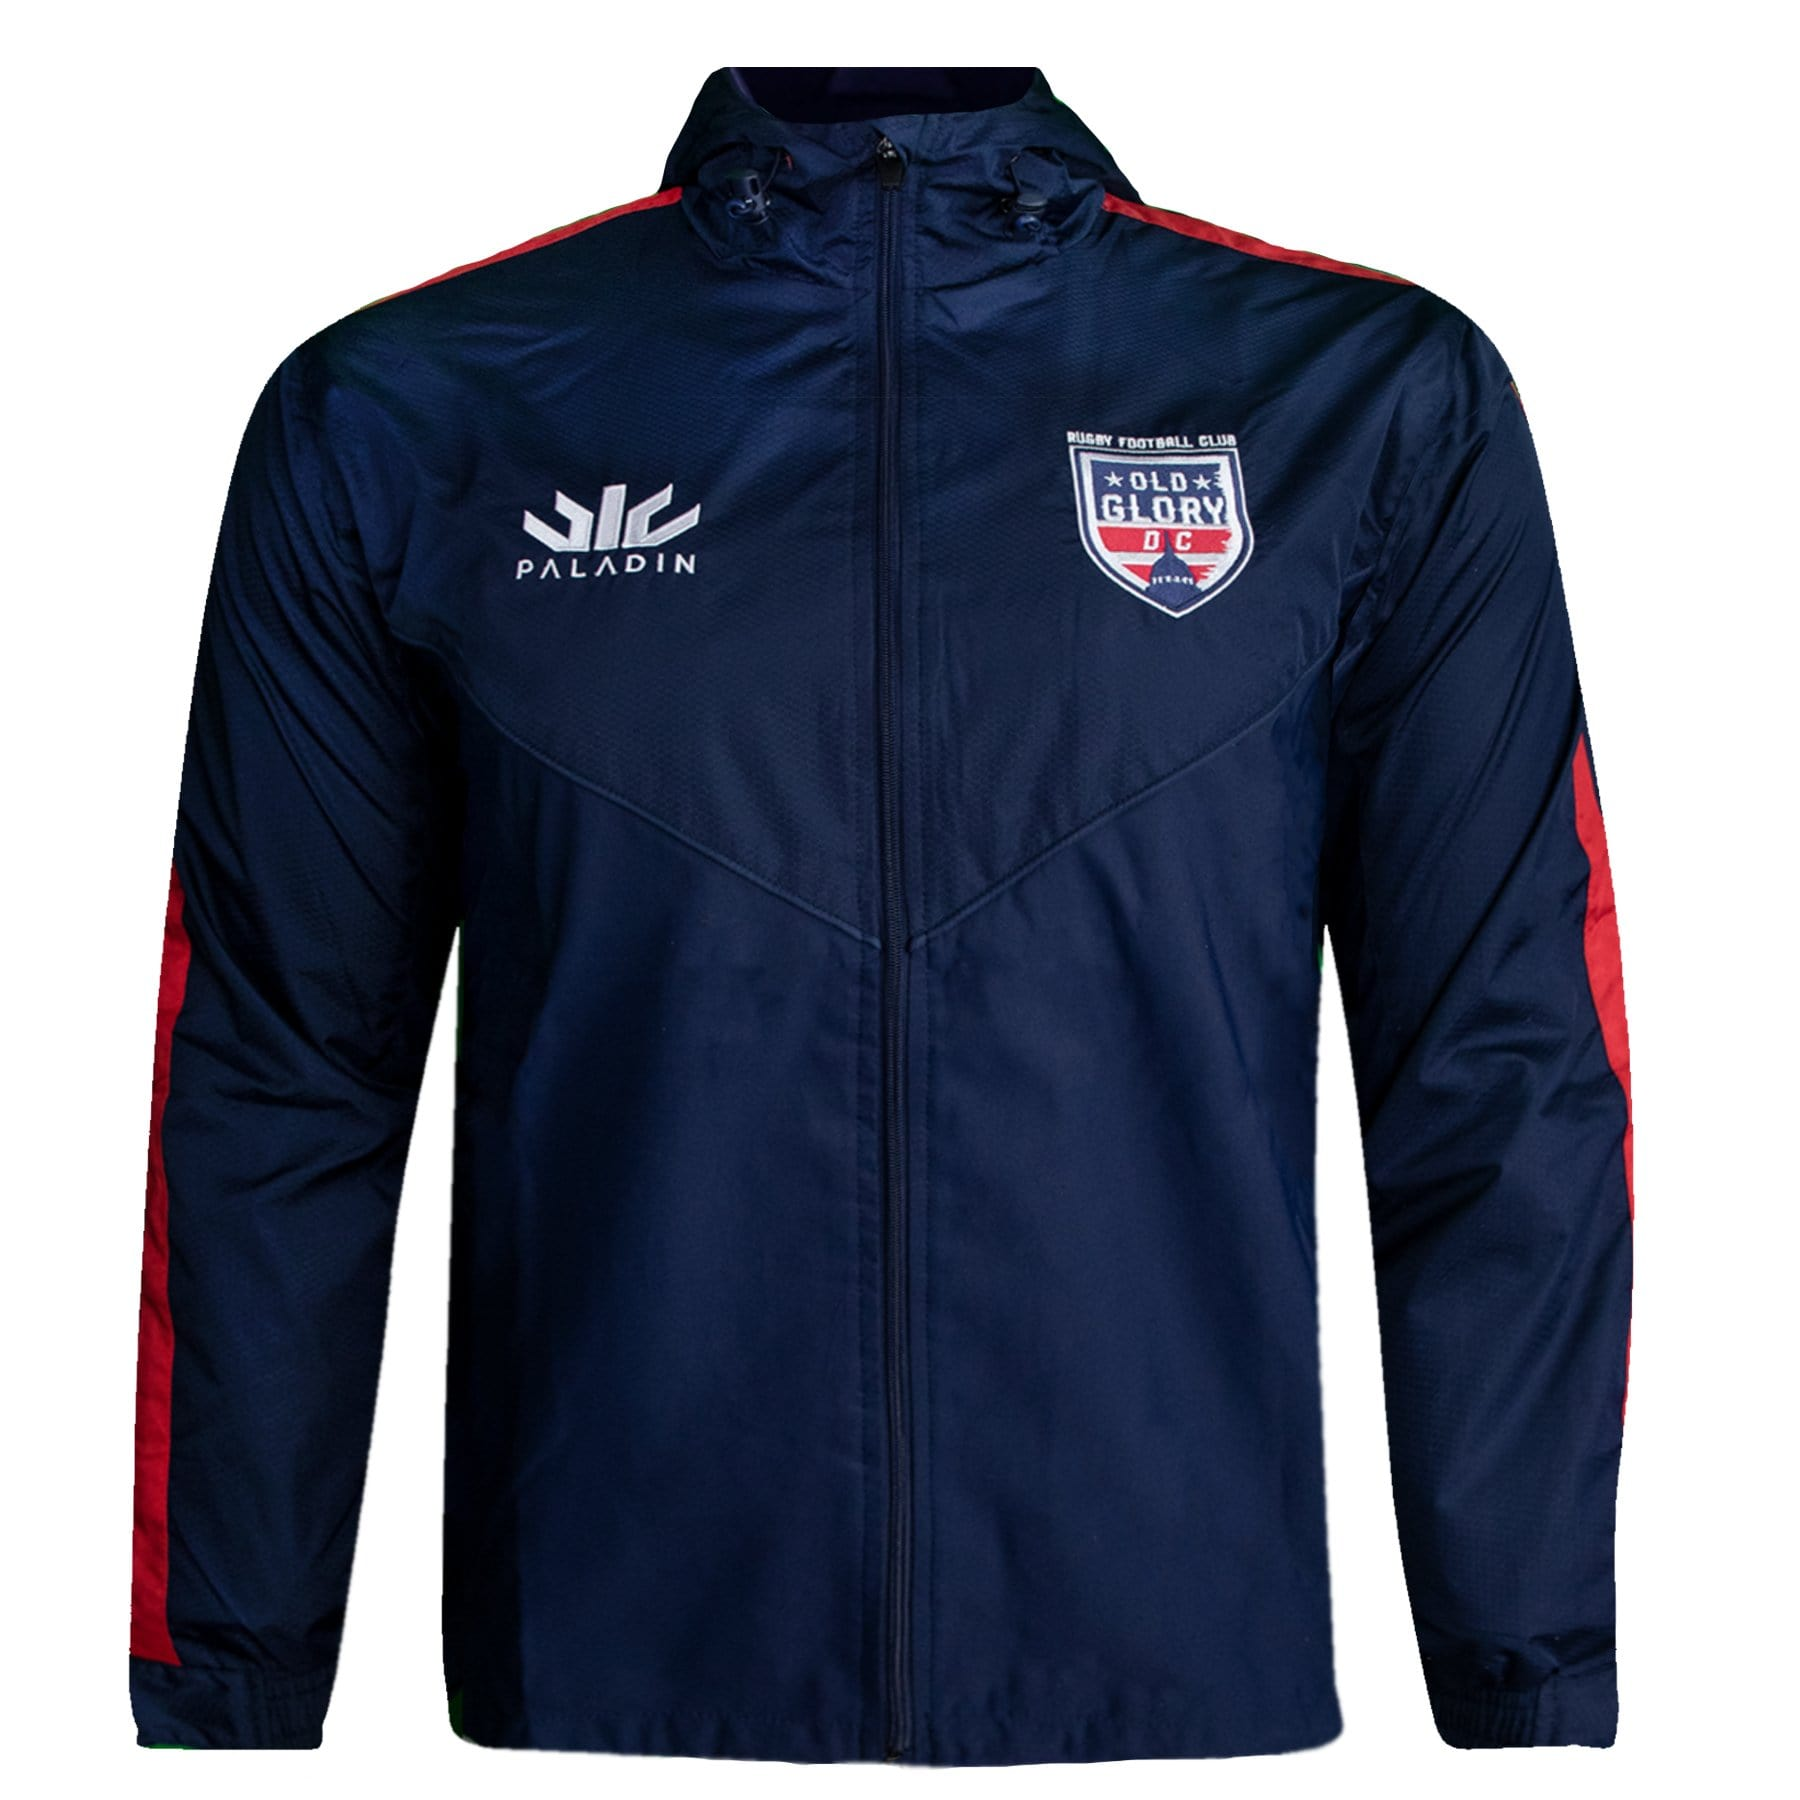 Paladin Old Glory DC Rugby Jacket Front